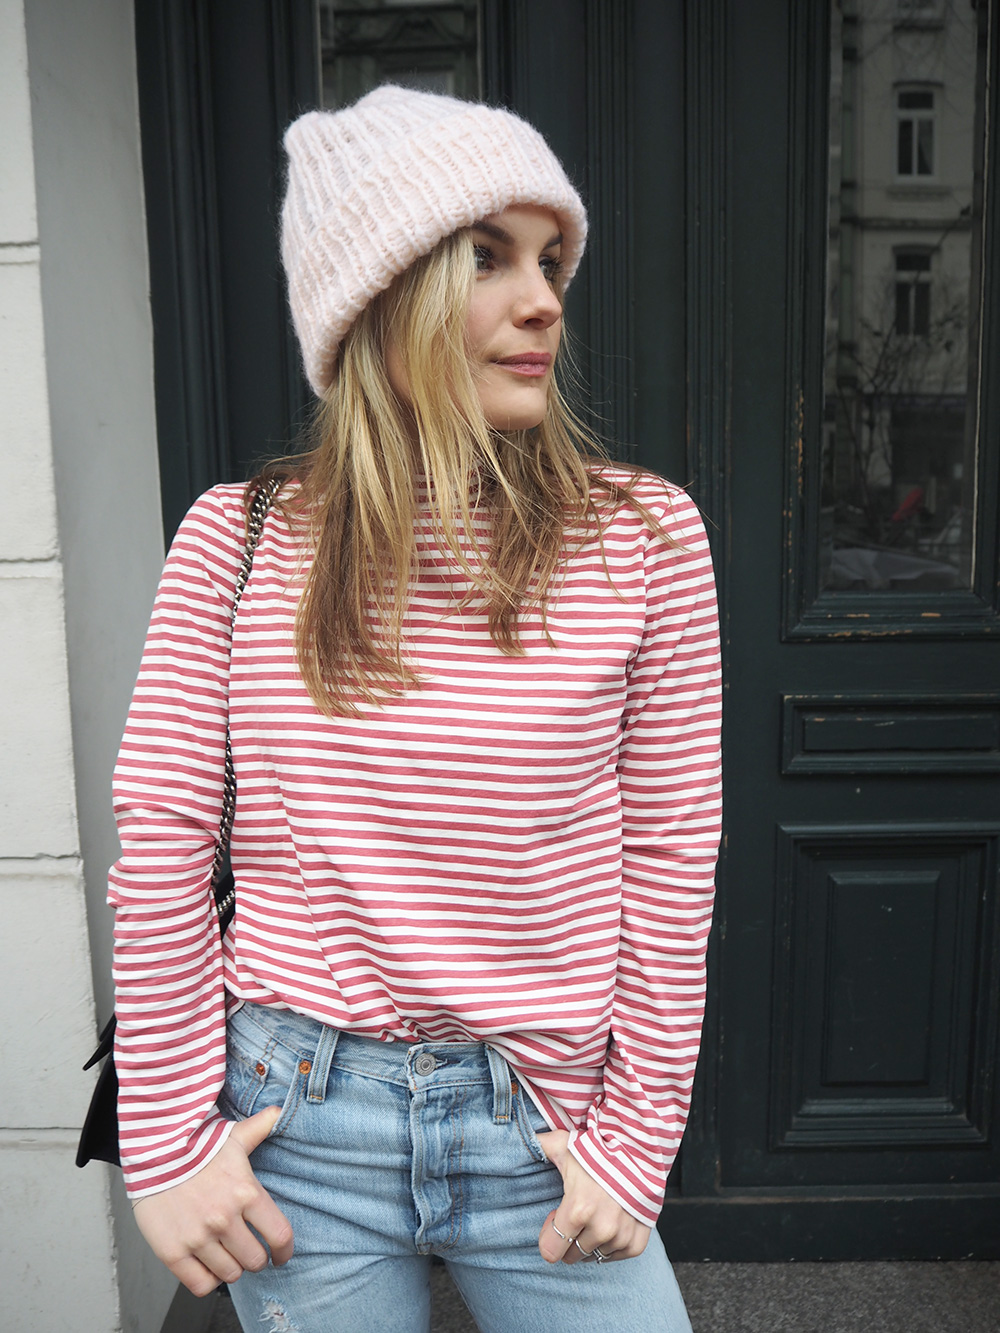 Rosycheeks-blog-levis-skinny-501-mih-jeans-pink-hat-2